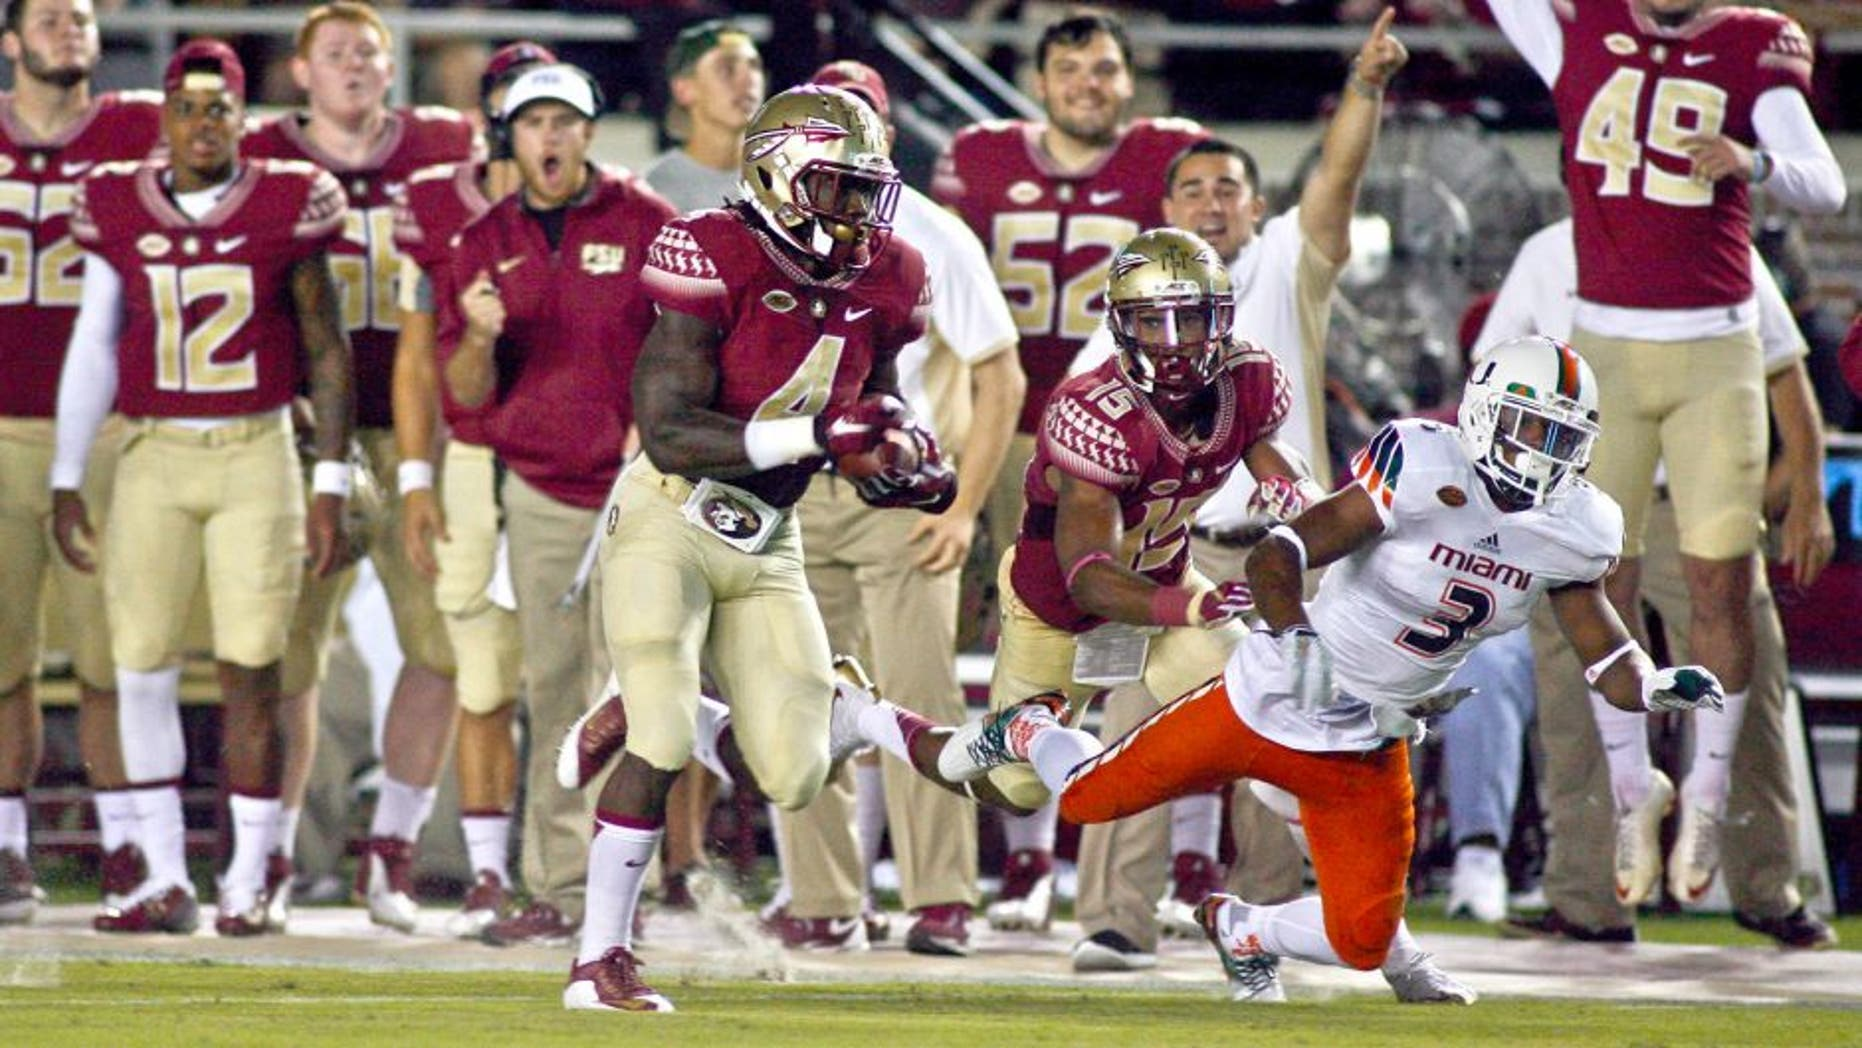 Oct 10, 2015; Tallahassee, FL, USA; With a block on Miami Hurricanes defensive back Tracy Howard (3) by Florida State Seminoles wide receiver Travis Rudolph (15), Florida State Seminoles running back Dalvin Cook (4) runs for a 72-yard touchdown in the first quarter of their game at Doak Campbell Stadium. Mandatory Credit: Phil Sears-USA TODAY Sports